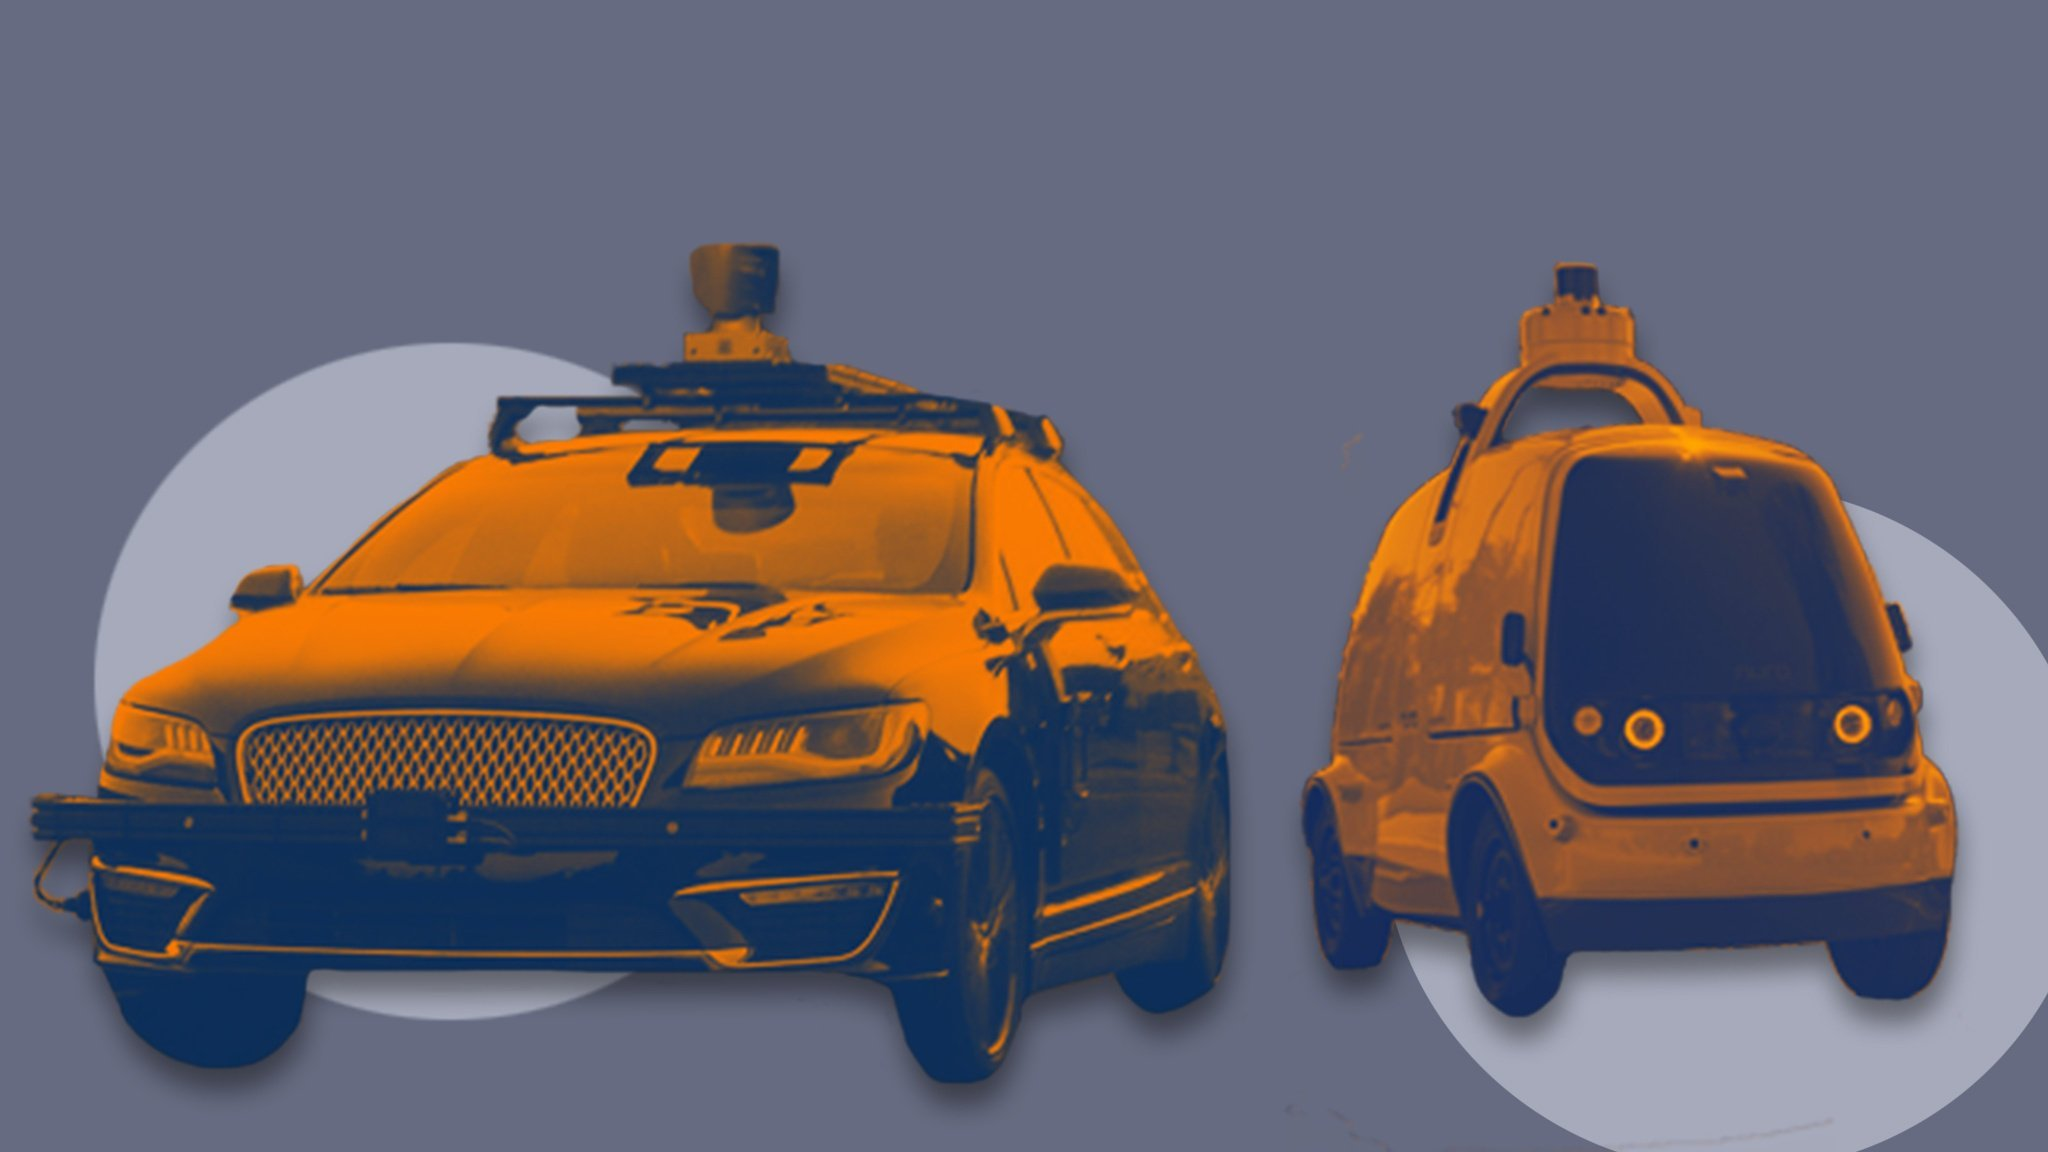 Leading self-driving car start-ups accelerate away from the